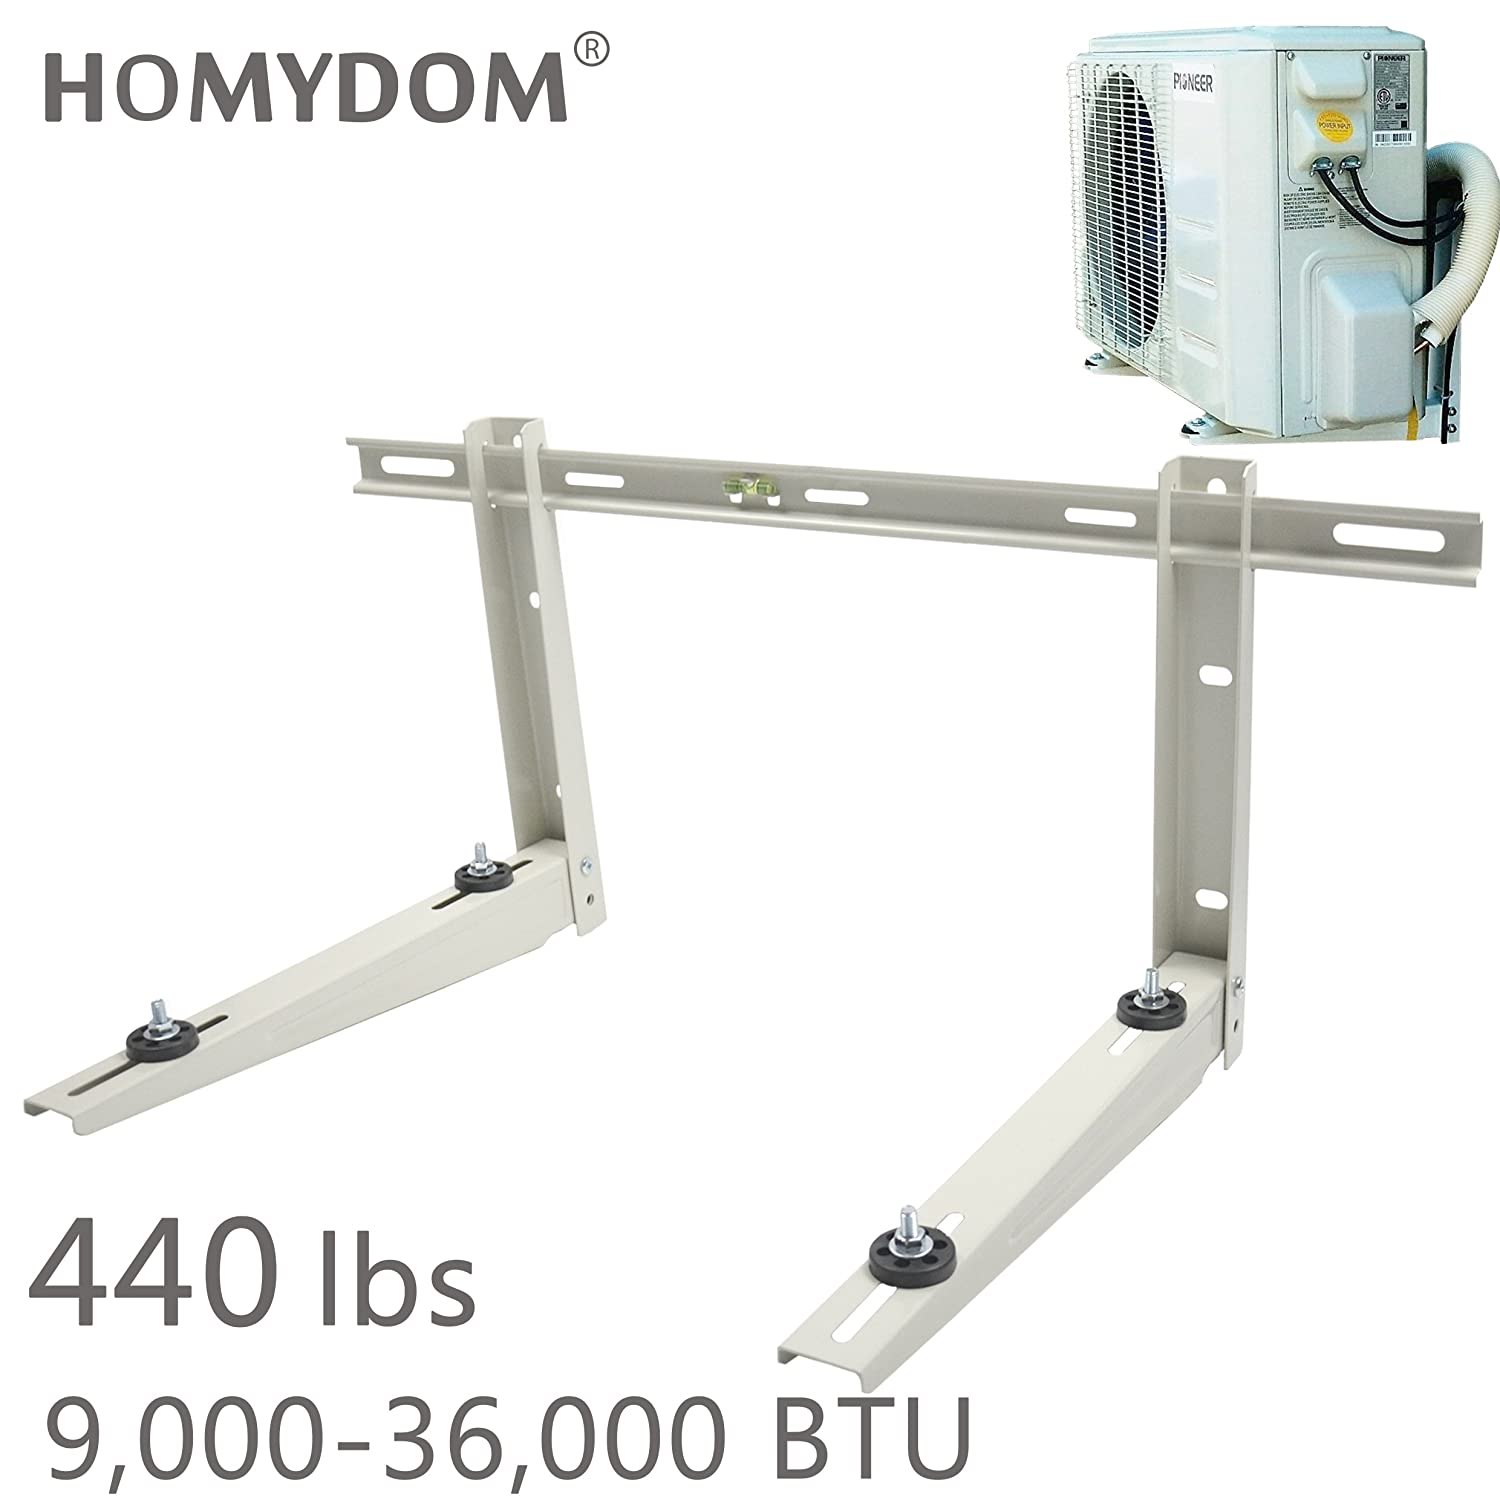 Homydom Mini Split Mounting Bracket for Ductless Air Conditioner,Universal,9000-36000 Btu Condenser